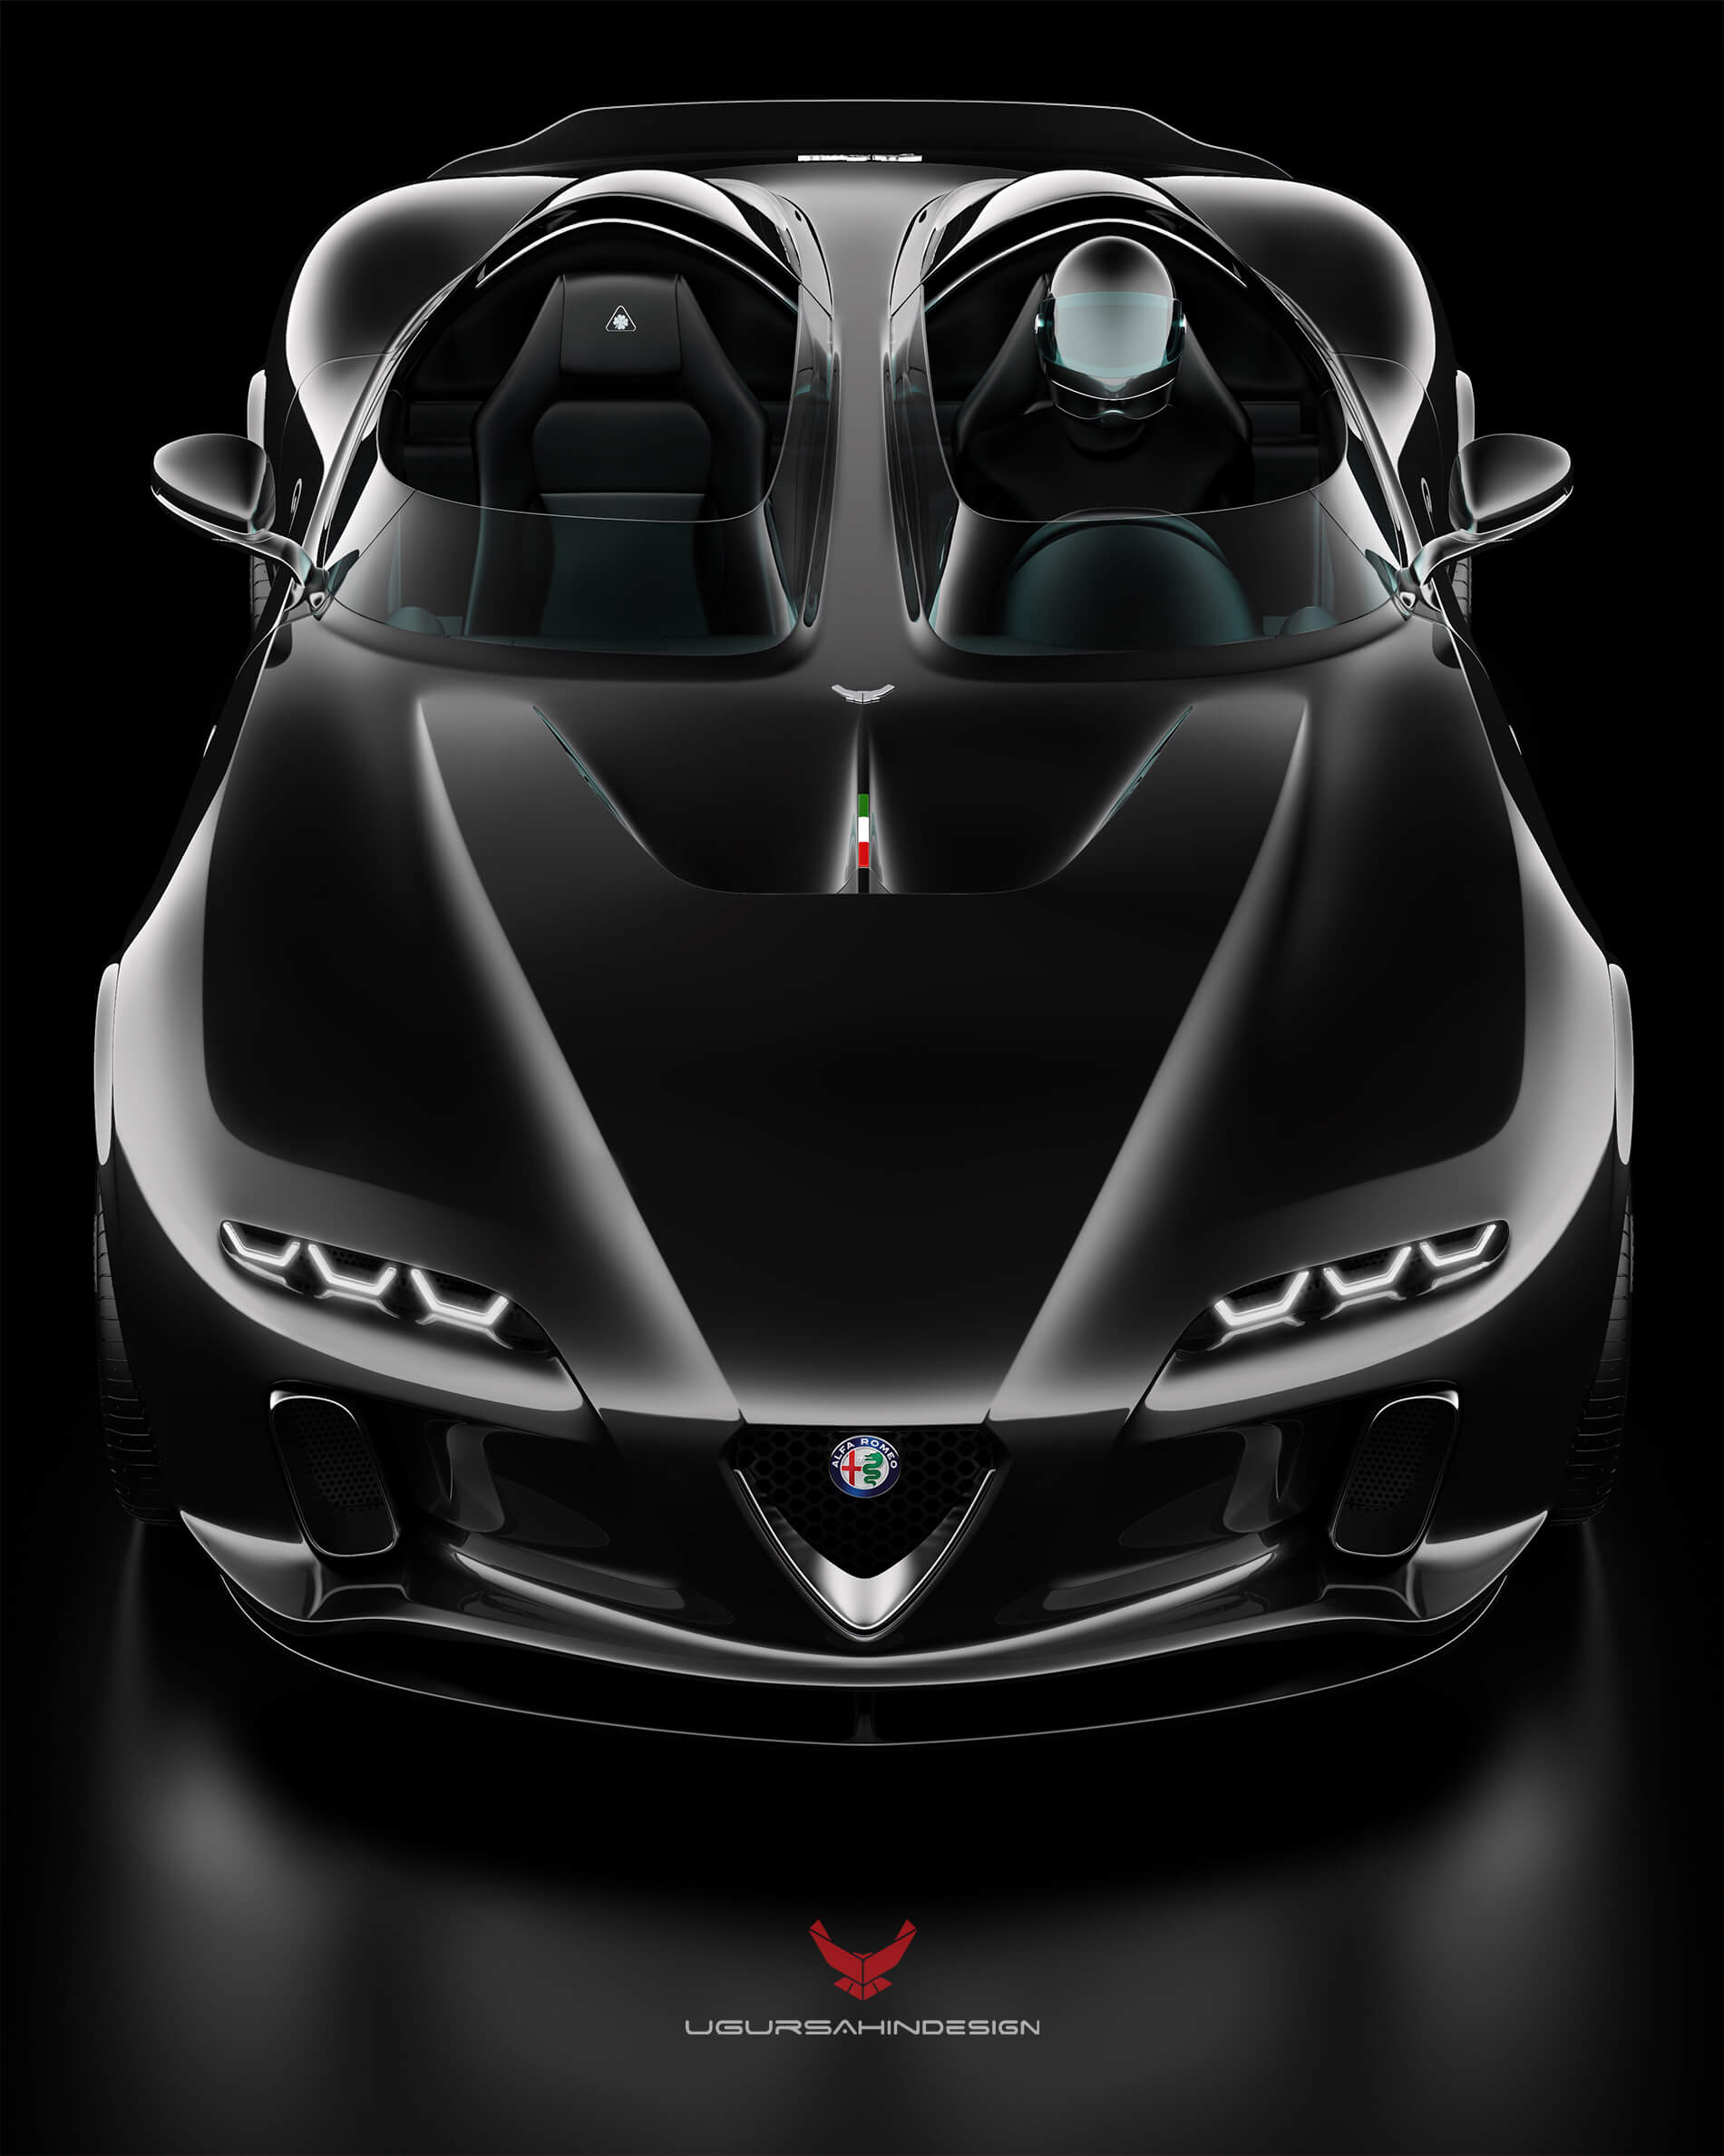 Alfa Romeo Usd Barchetta Concept Car With Separated Cockpits Distancing Intact